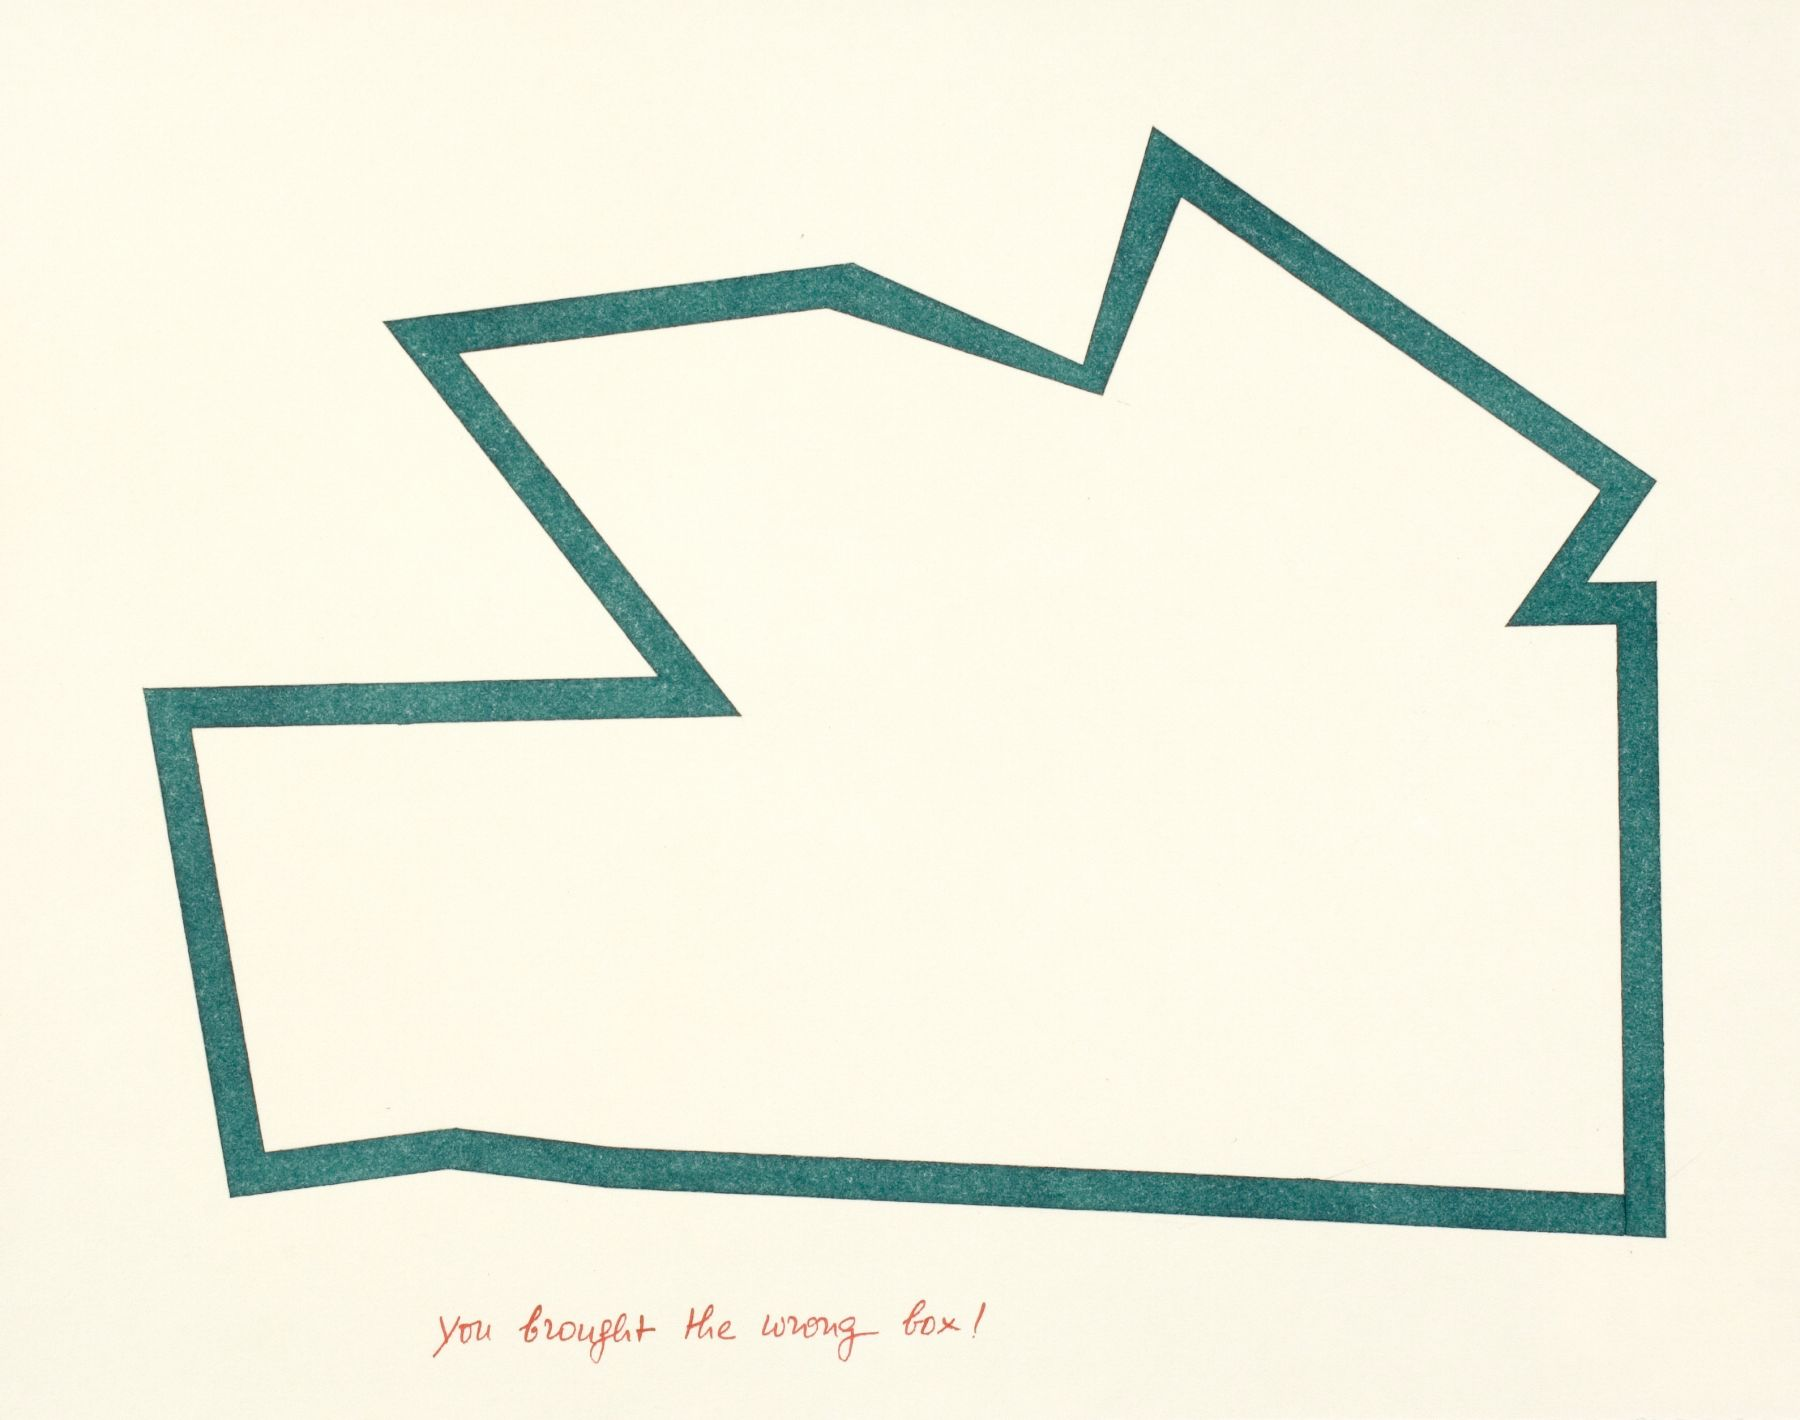 You brought the wrong box!, c. 1982, ink and pencil on Arches paper, 11 x 14 inches